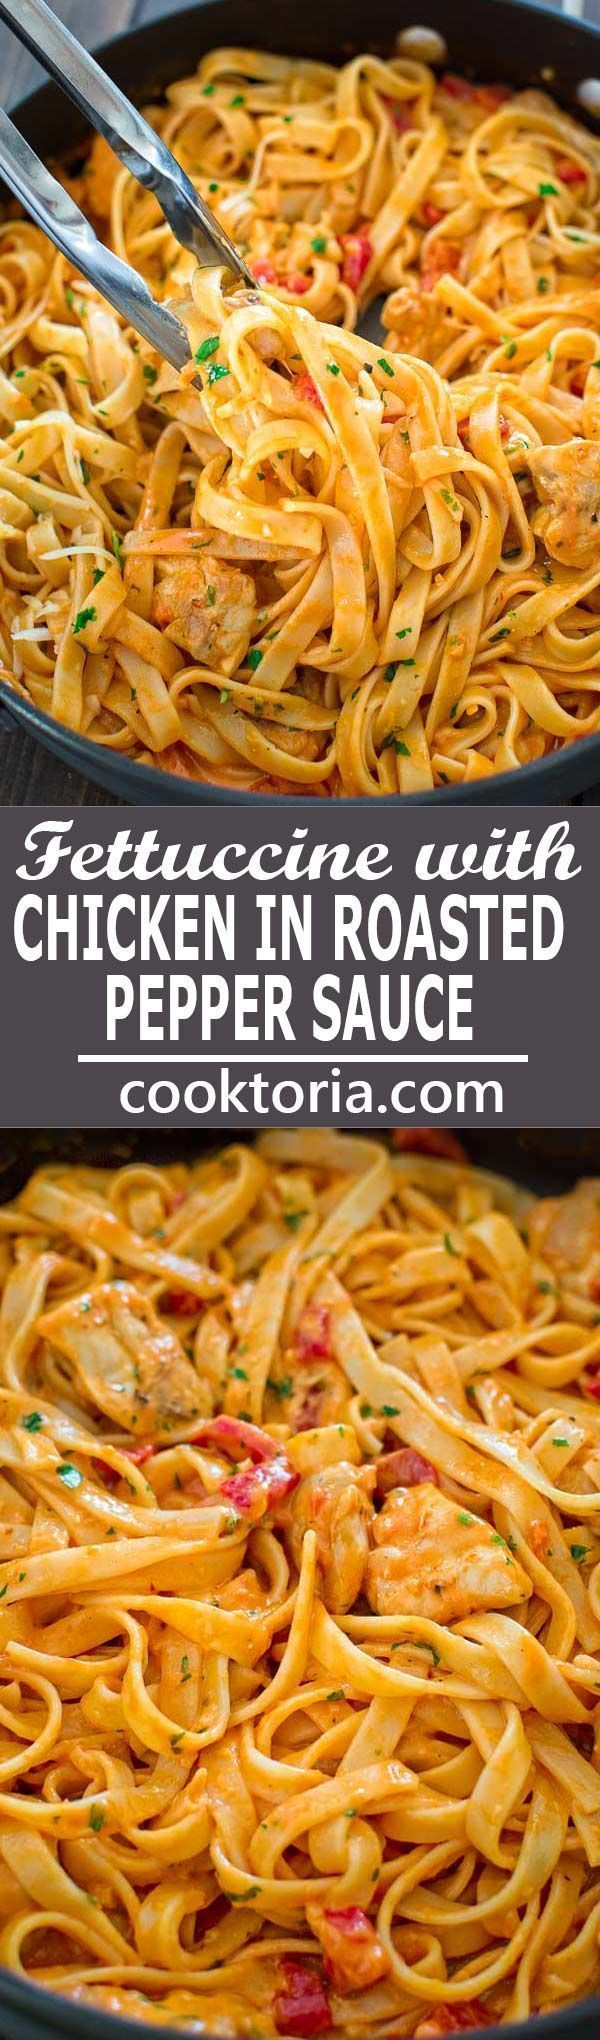 This elegant and creamy Fettuccine with Roasted Pepper Sauce and Chicken is made in under 30 minutes and requires just 6 ingredients. Your guests and family members will love it! ❤ http://COOKTORIA.COM